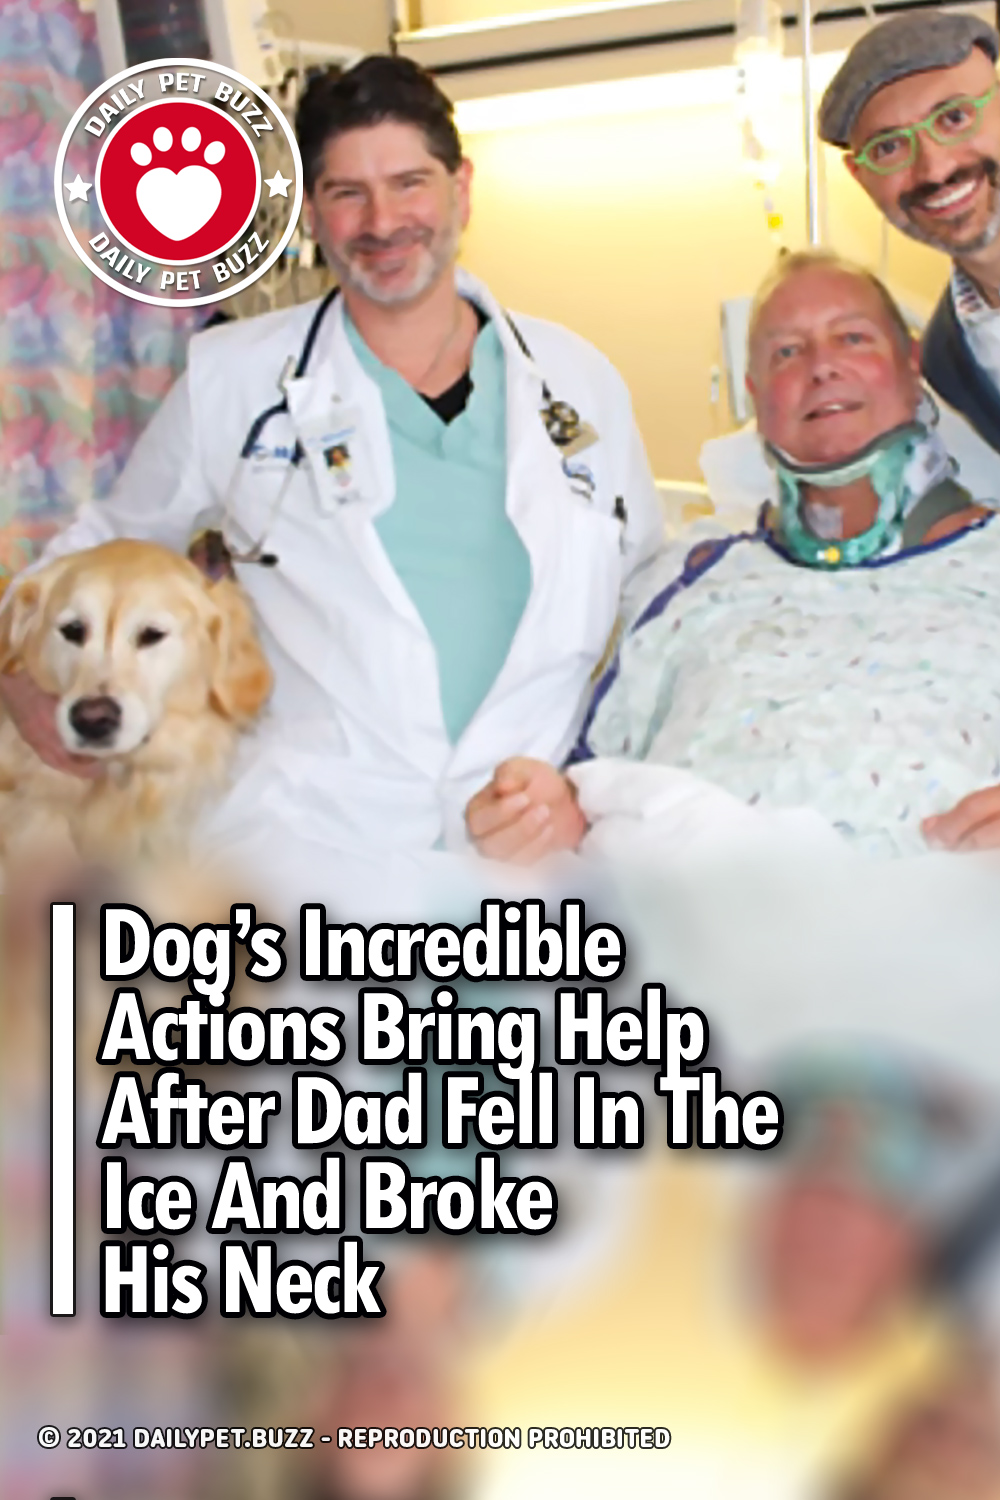 Dog\'s Incredible Actions Bring Help After Dad Fell In The Ice And Broke His Neck